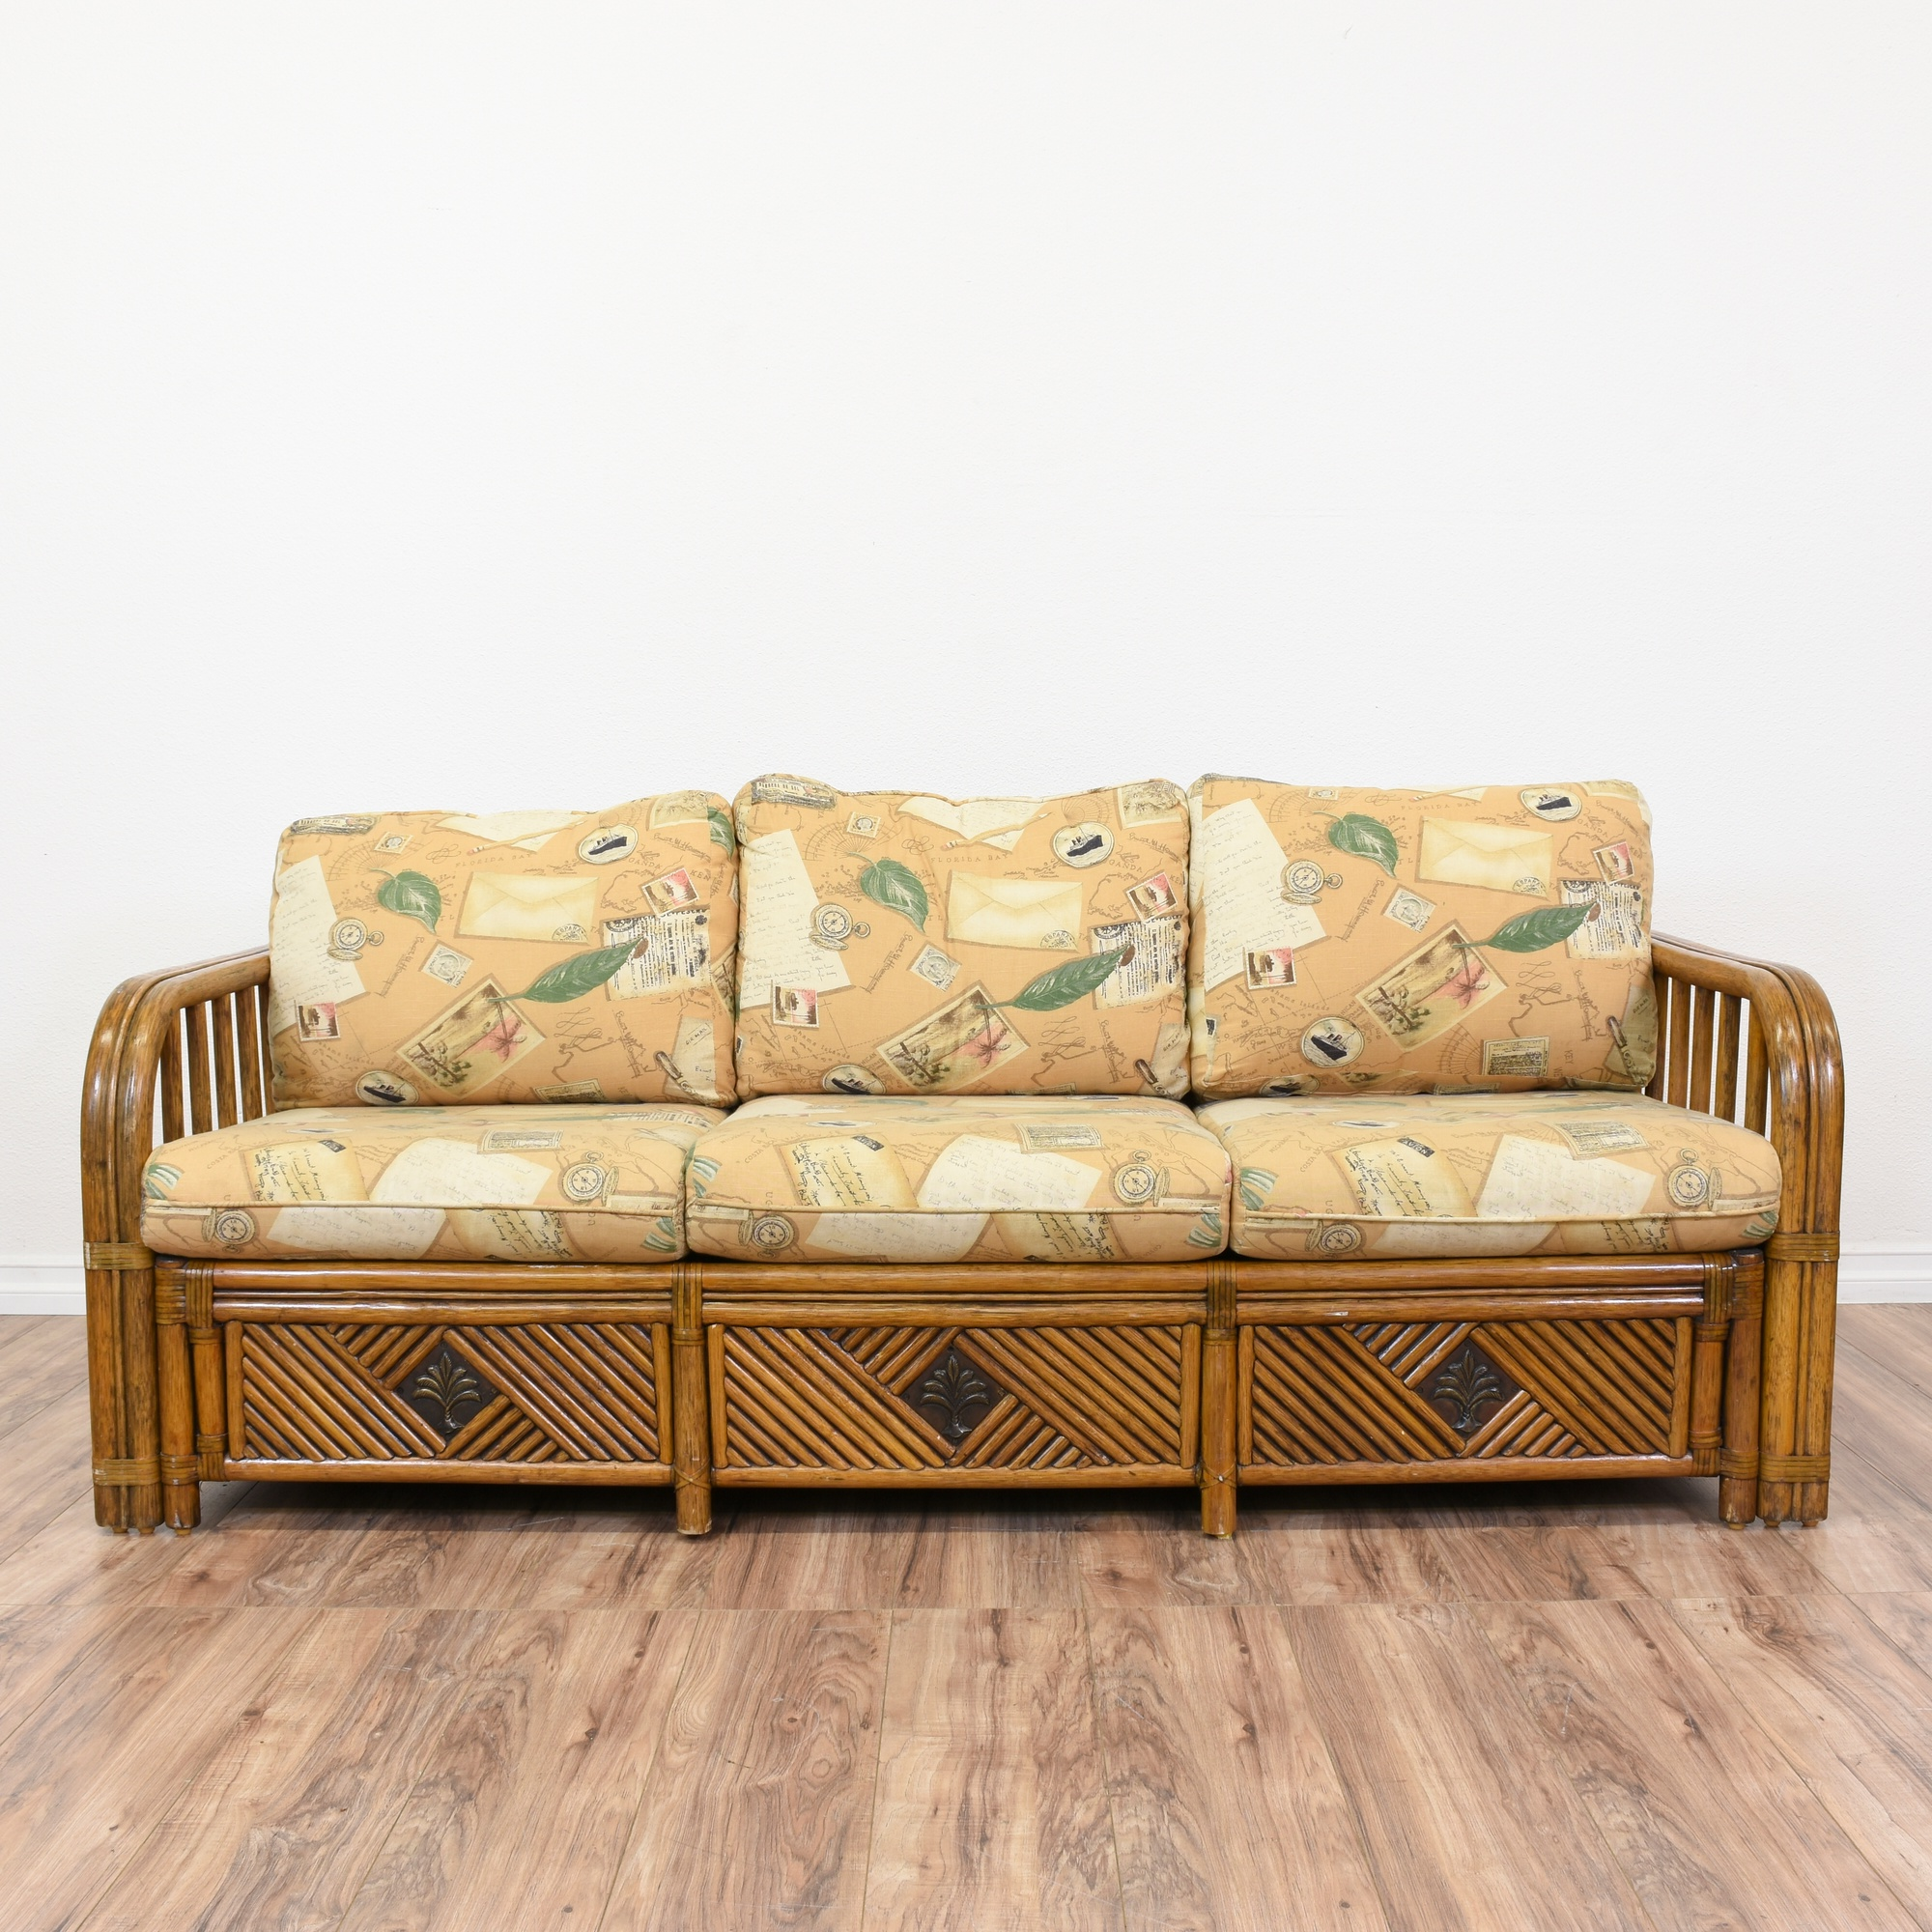 Tropical rattan sleeper sofa bed loveseat vintage for Wicker futon sofa bed